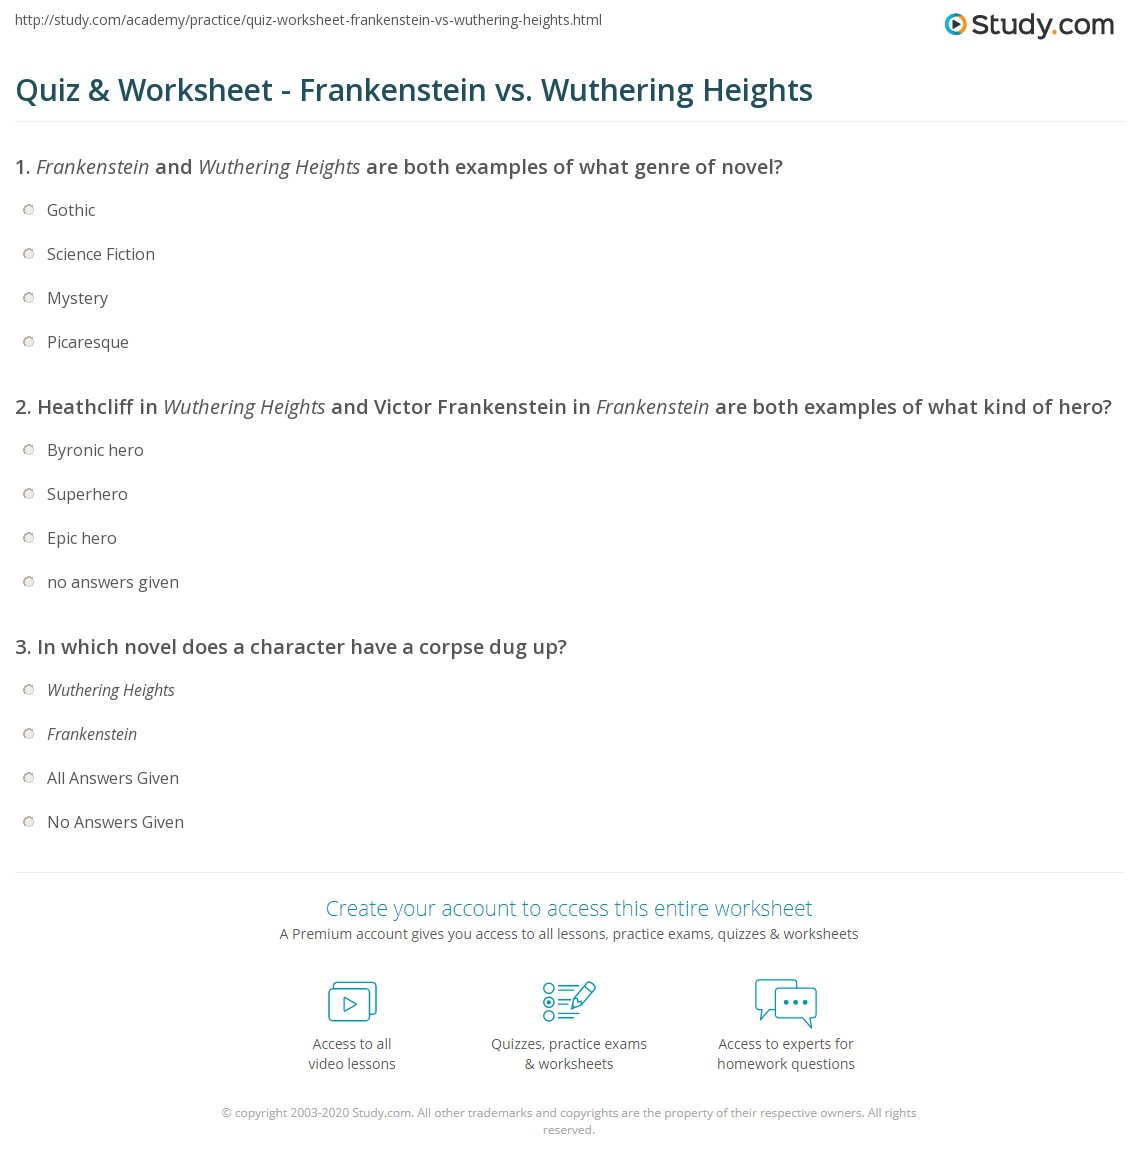 wuthering heights questions and answers Wuthering heights test generator ©2006 baggetta_ware  answers or questions memorized in sequence, so they can simply fill in the blanks, regardless of what.